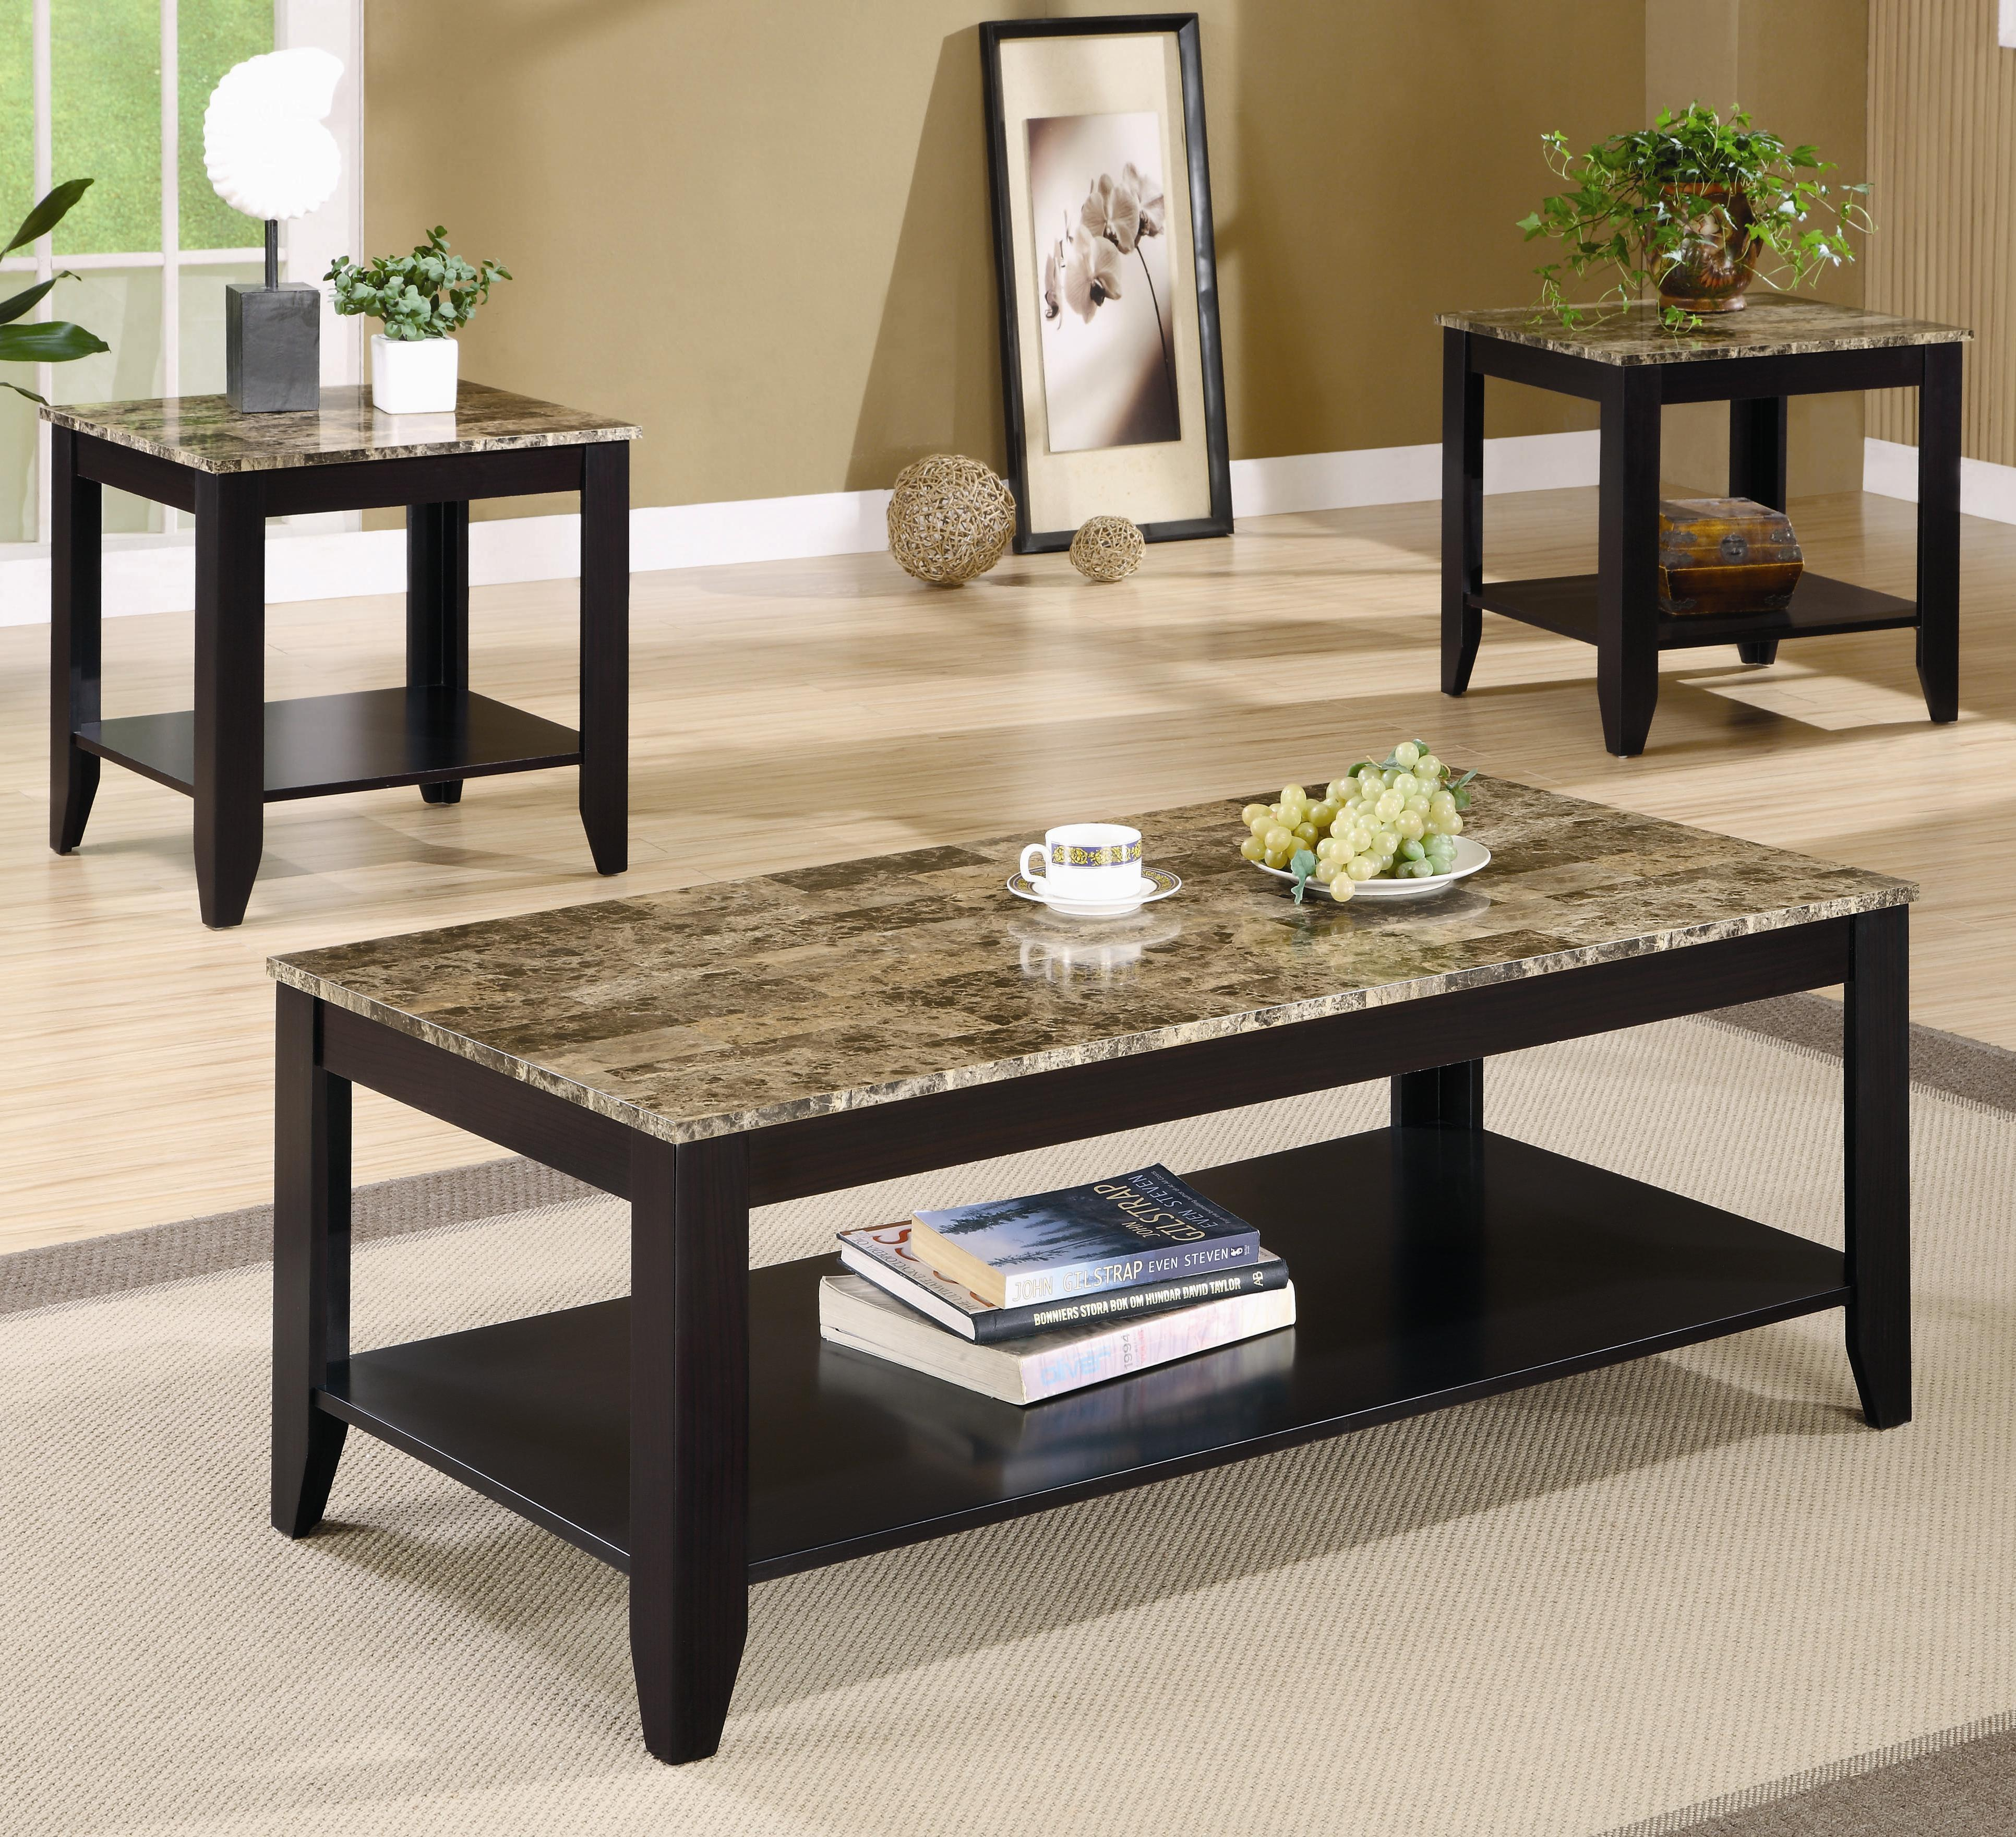 - 3 Piece Occasional Table Set With Shelf And Marble Look Top